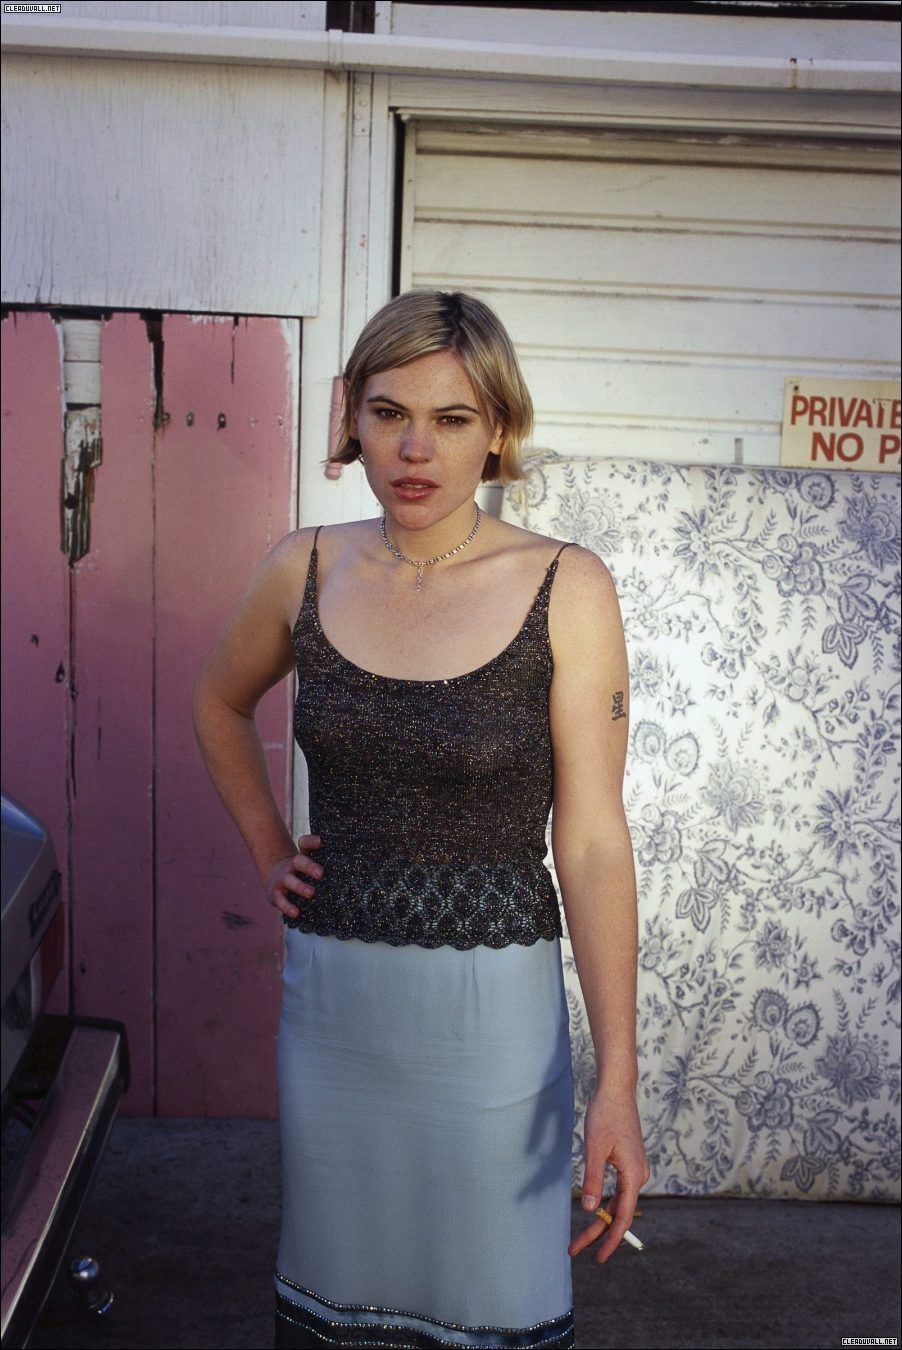 clea duvall better call saulclea duvall photos, clea duvall mia, clea duvall twitter, clea duvall instagram, clea duvall american horror story, clea duvall, clea duvall imdb, clea duvall 2015, clea duvall better call saul, clea duvall wikipedia, clea duvall movies